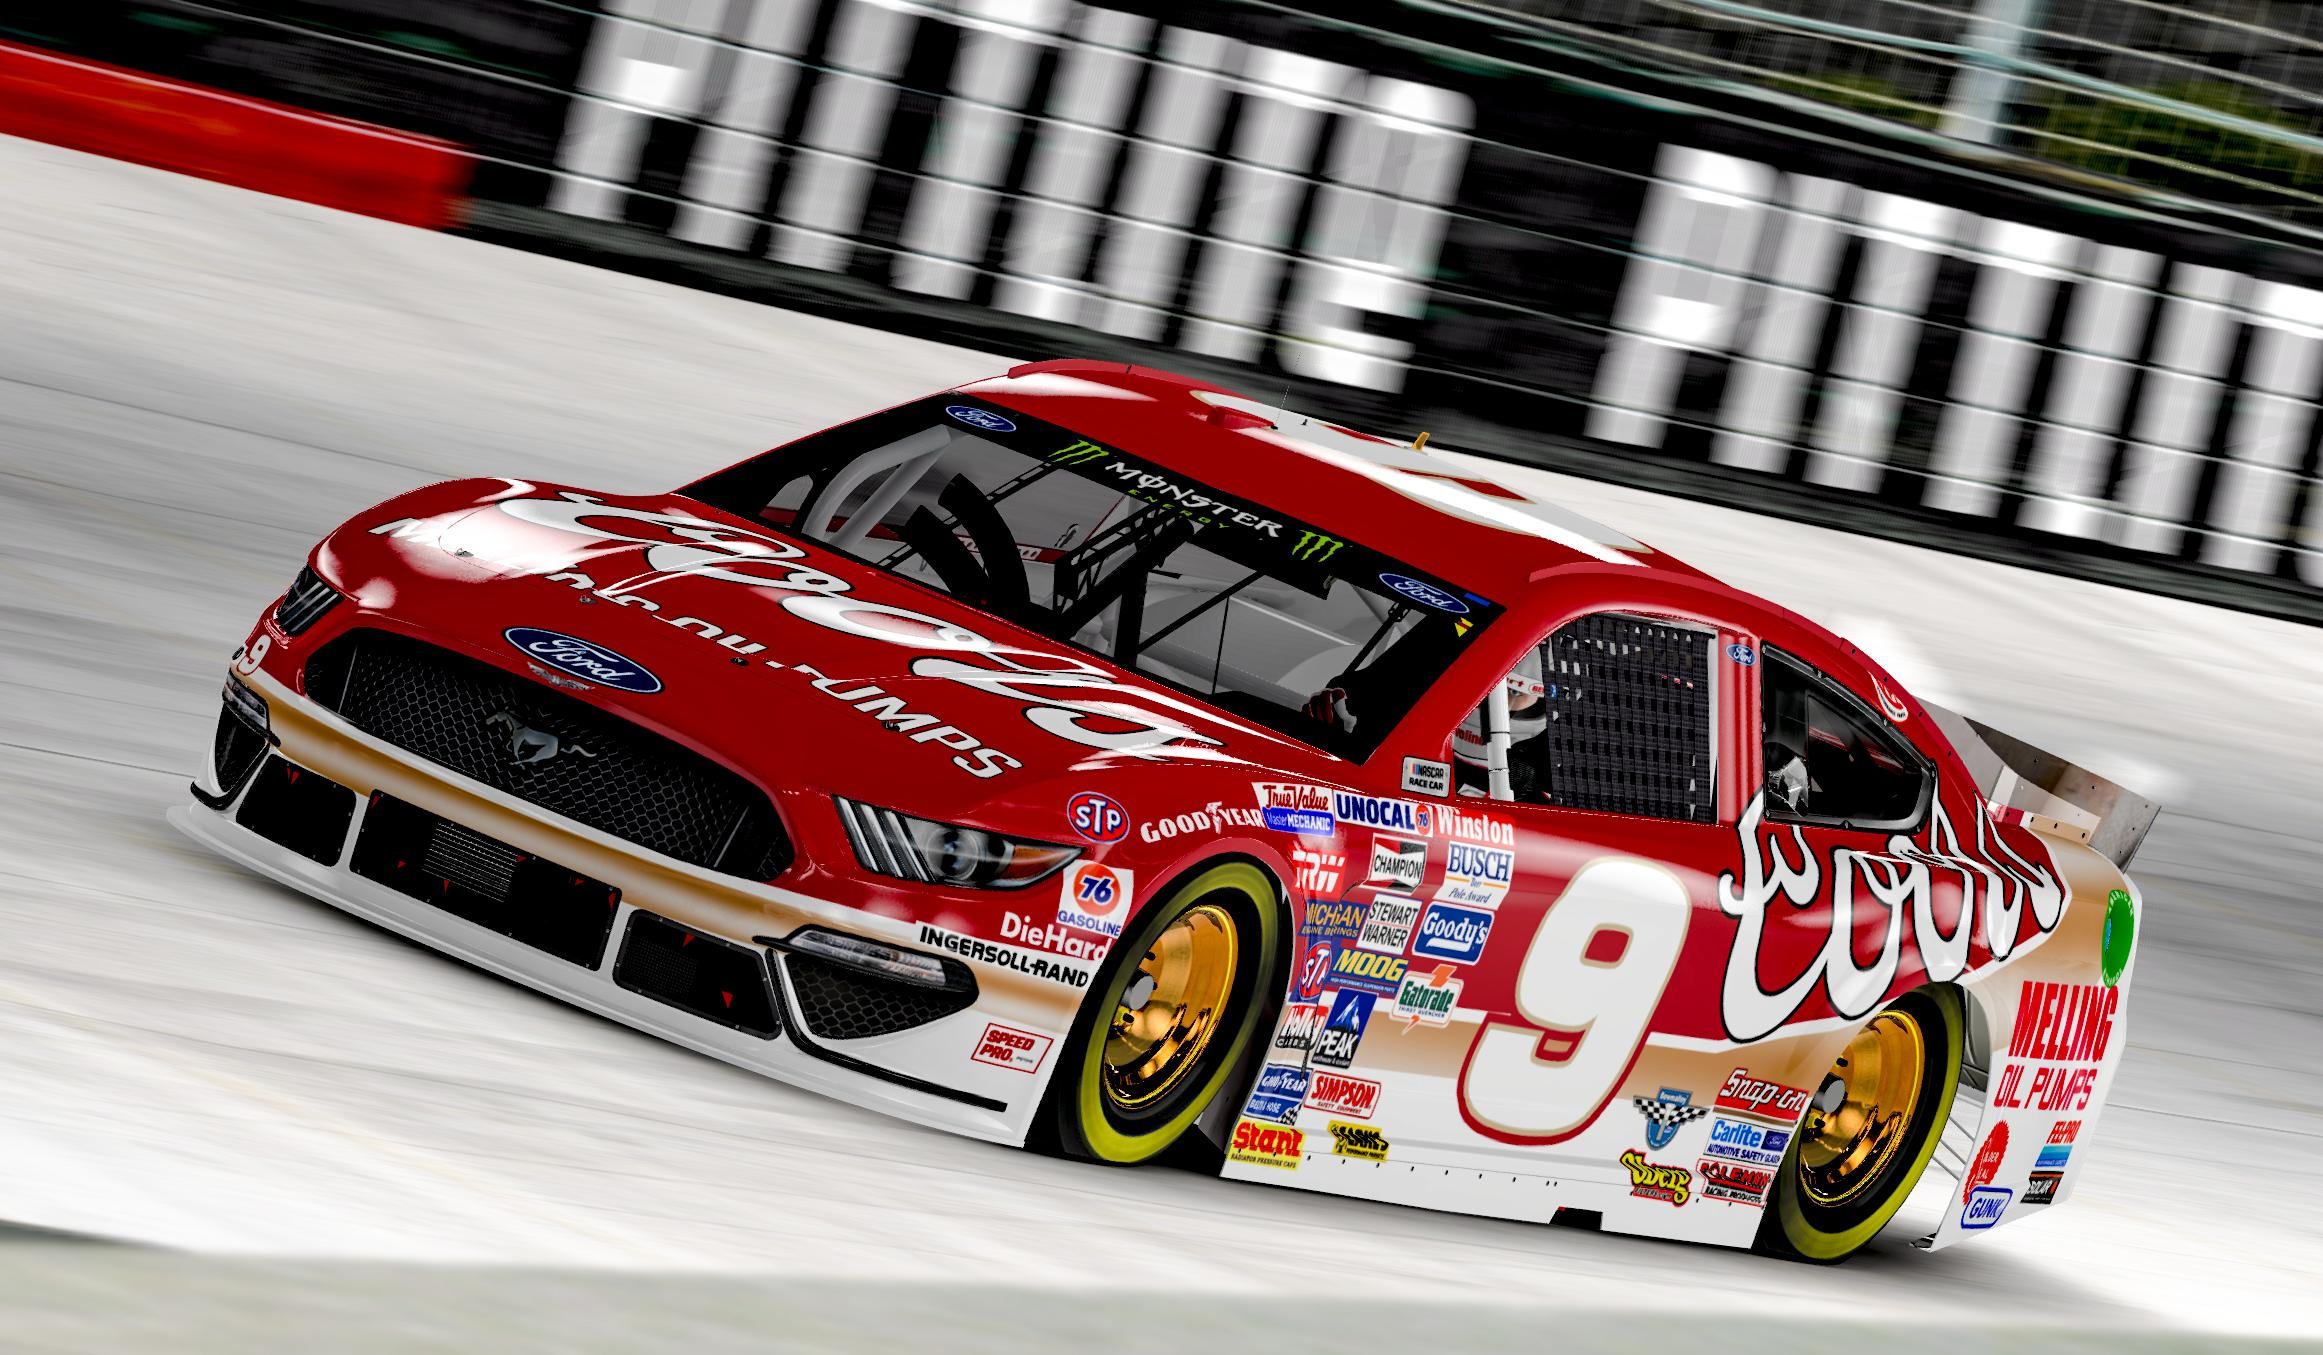 Preview of 1987 BILL ELLIOTT COORS Ford Throwback by Corey H.